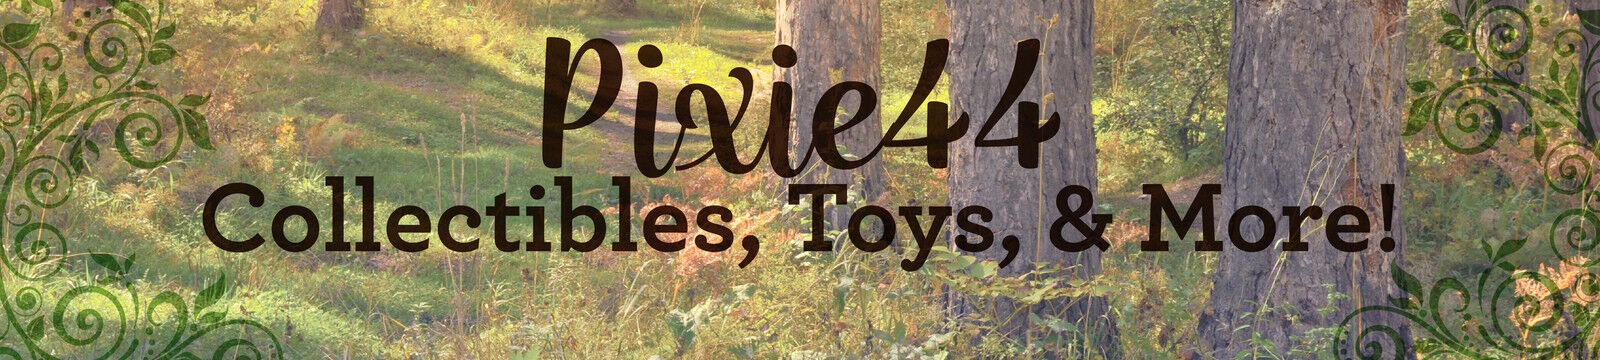 Pixie44 Collectibles-Toys and More